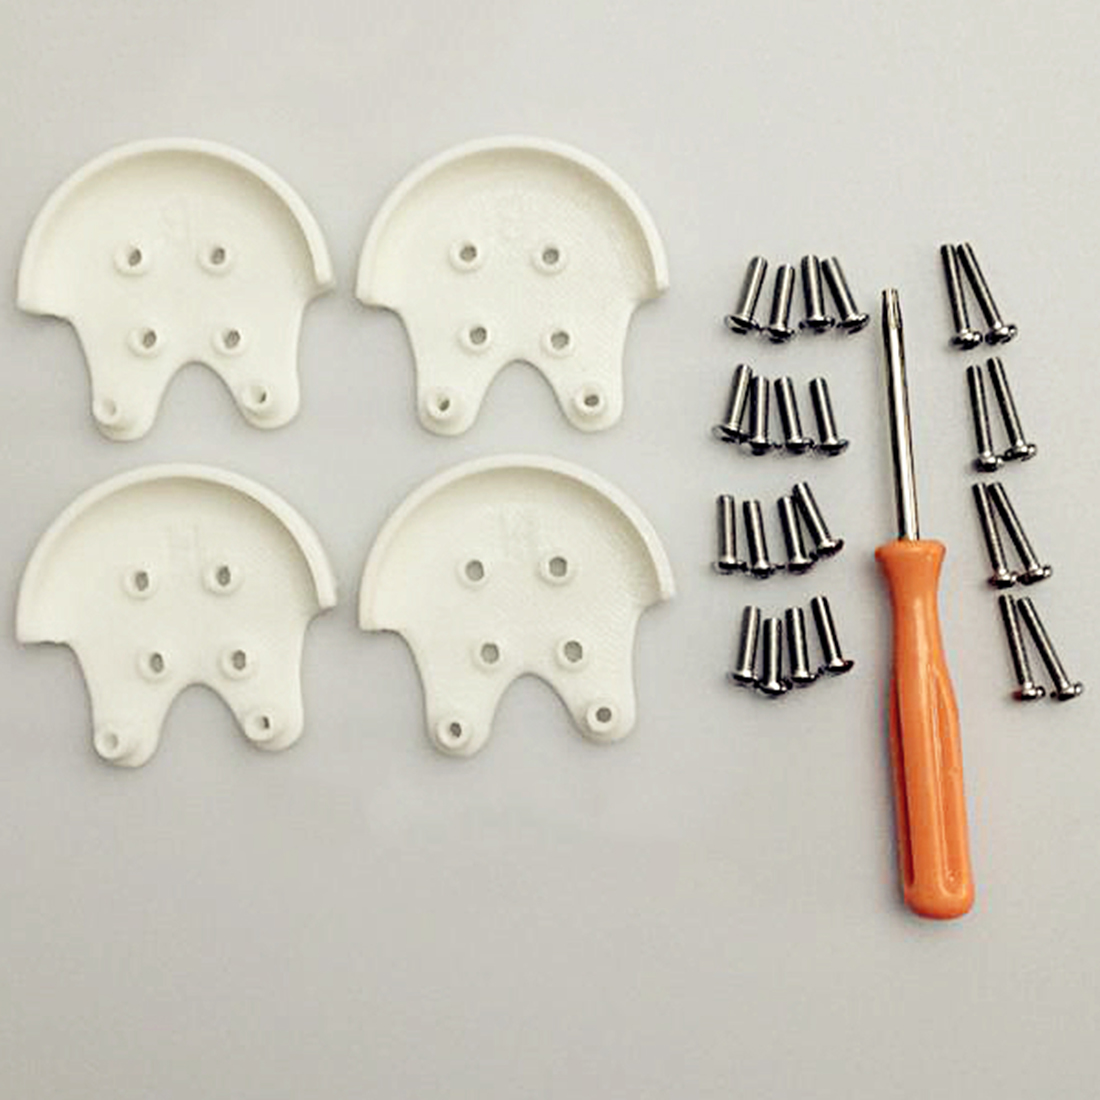 Motor Seat Reinforcement Parts for DJI phantom 3(3D Print Version) RC Helicopters Accessories